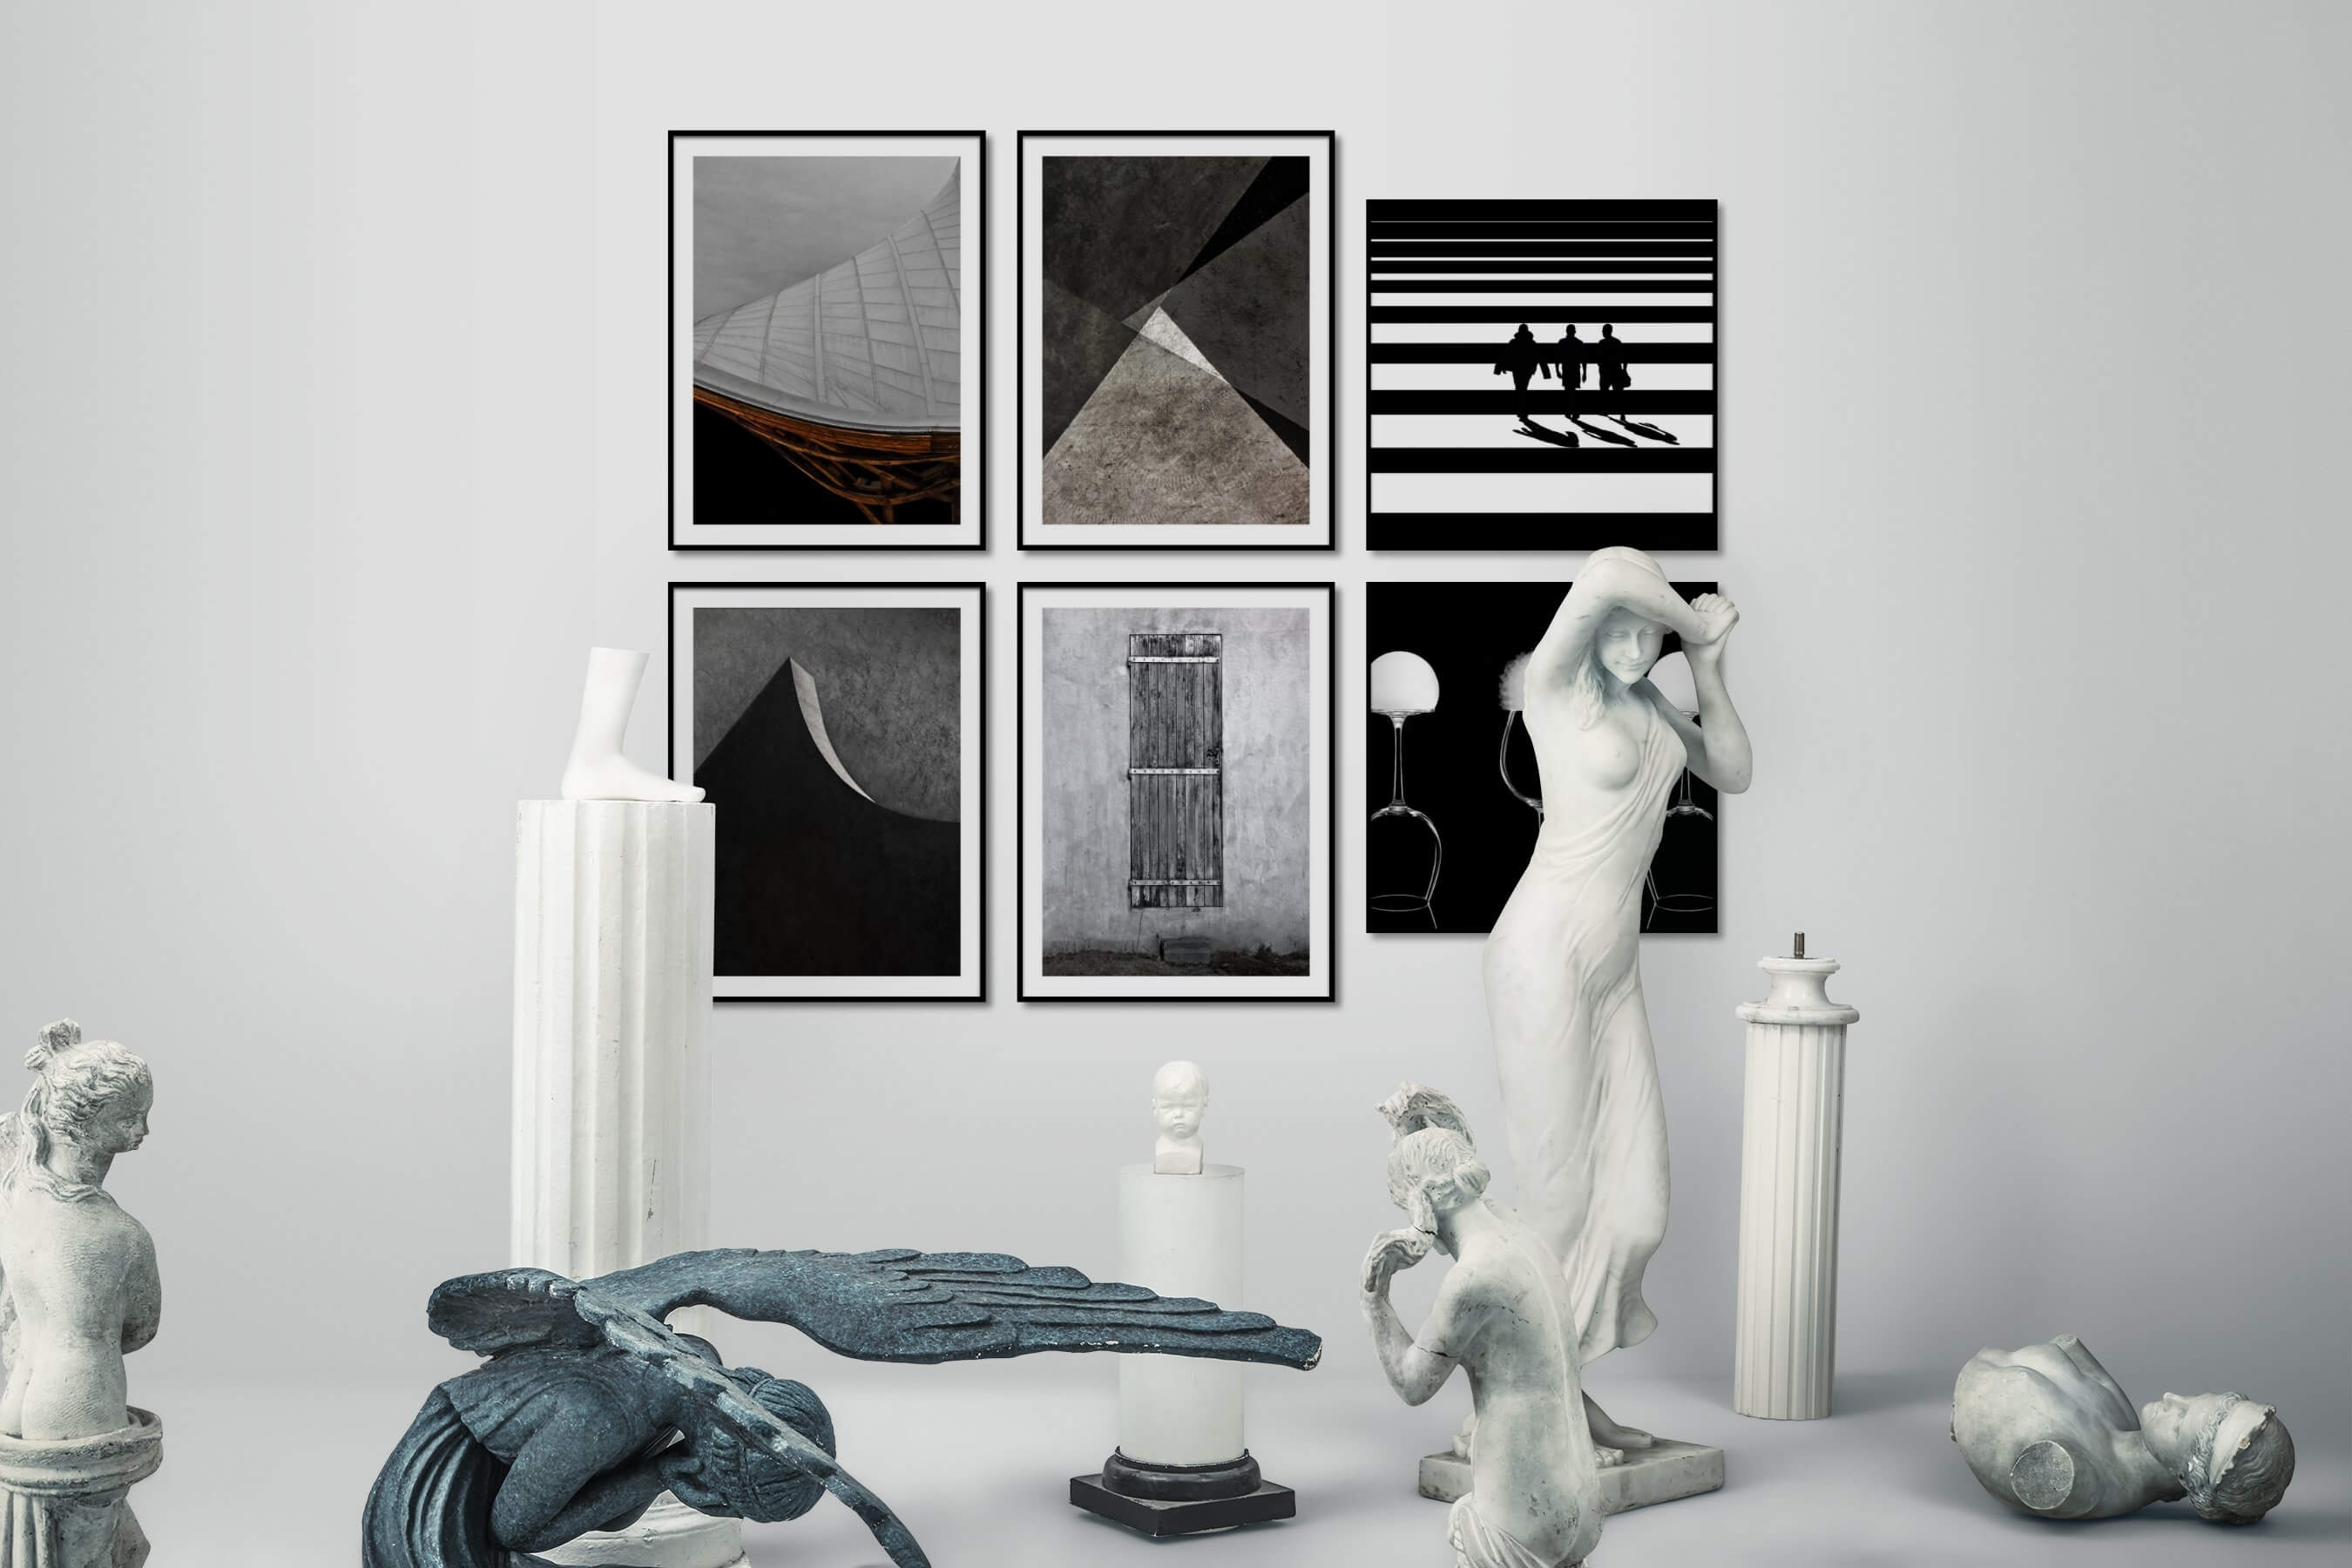 Gallery wall idea with six framed pictures arranged on a wall depicting For the Moderate, Black & White, For the Minimalist, Country Life, and Dark Tones